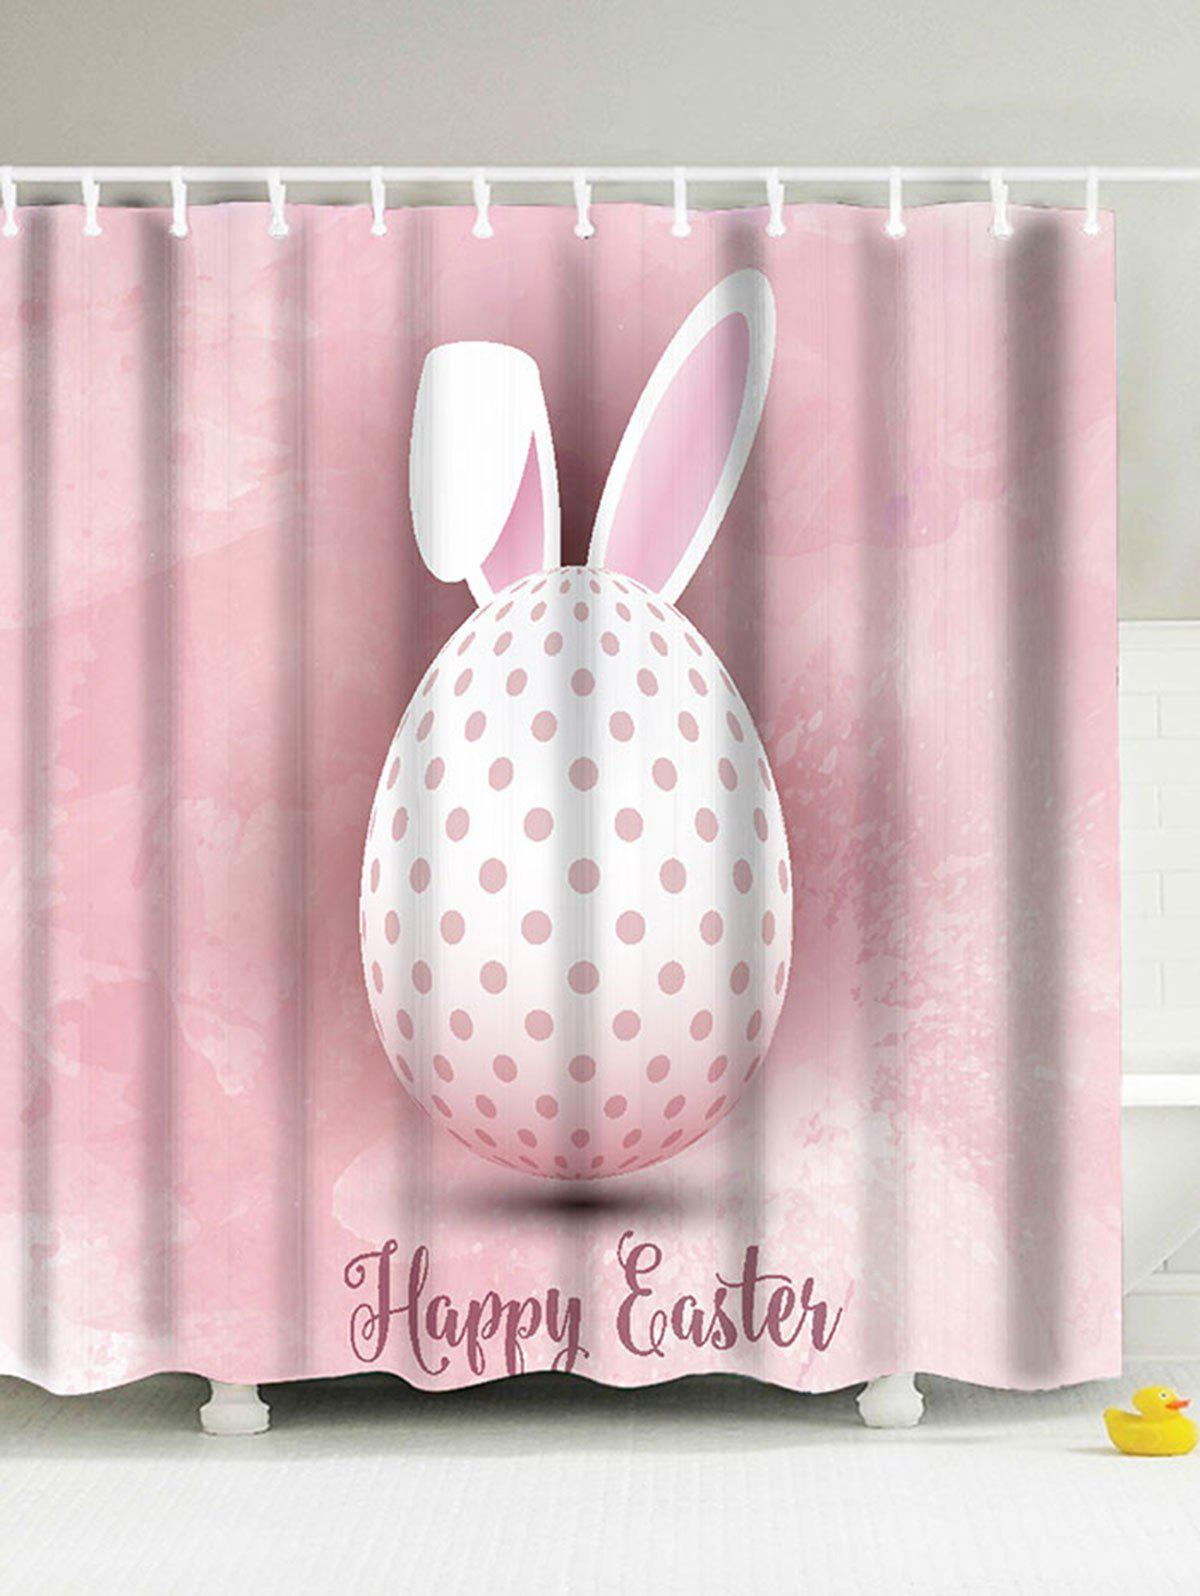 Happy Easter Rabbit Egg Eco-Friendly Shower Curtain - PINK 180*200CM